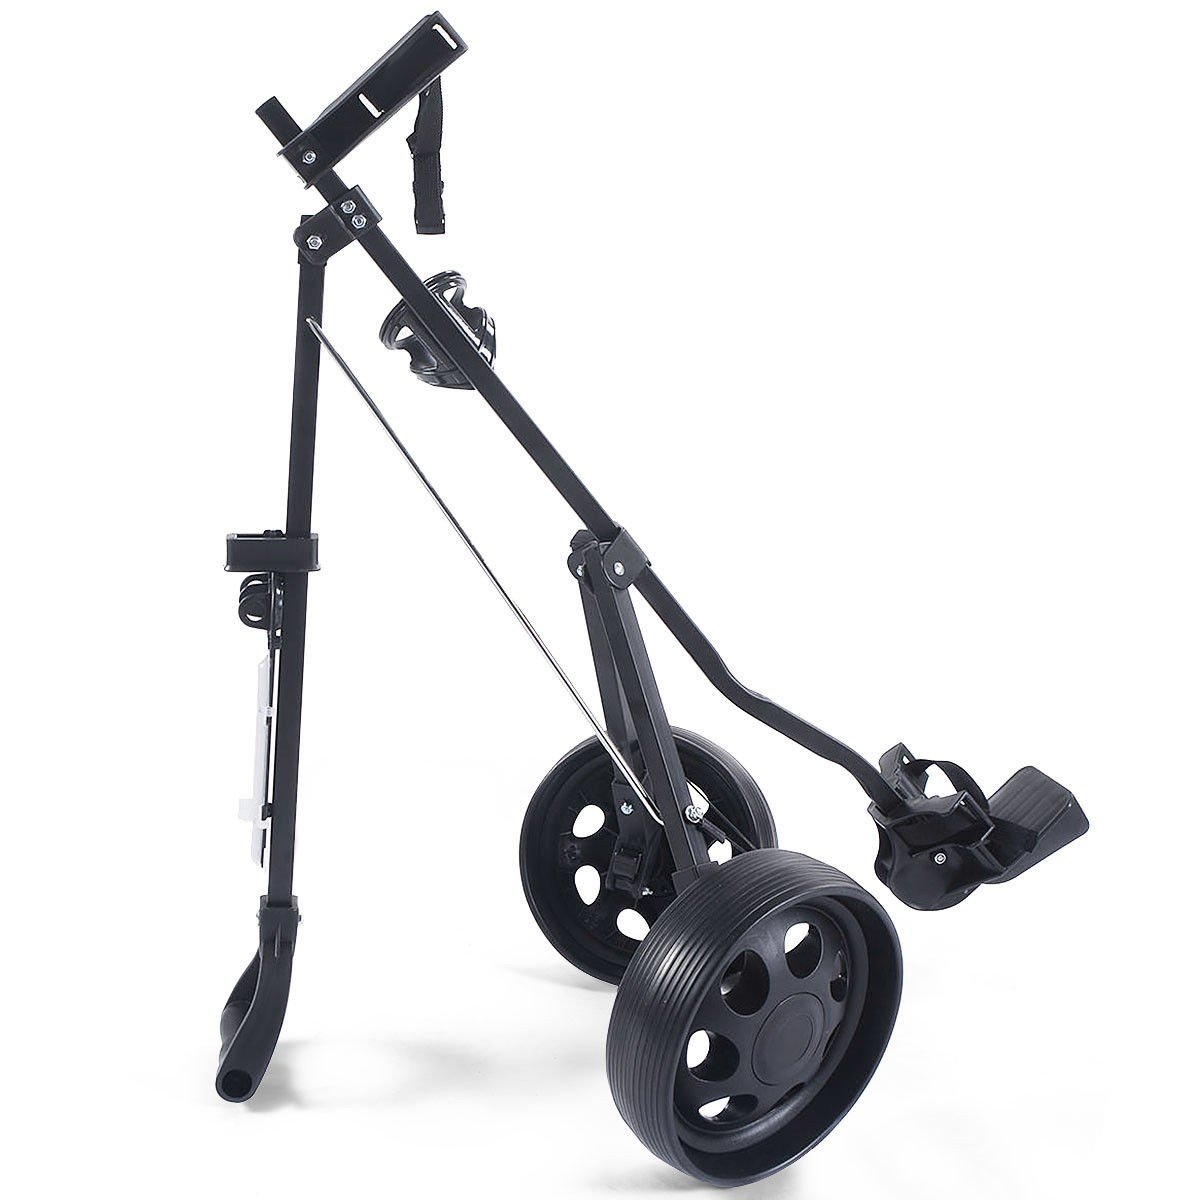 MD Group Golf Cart Holder Trolley Foldable 2 Wheels Push Pull Foldable Design Lightweight Equipment by MD Group (Image #8)